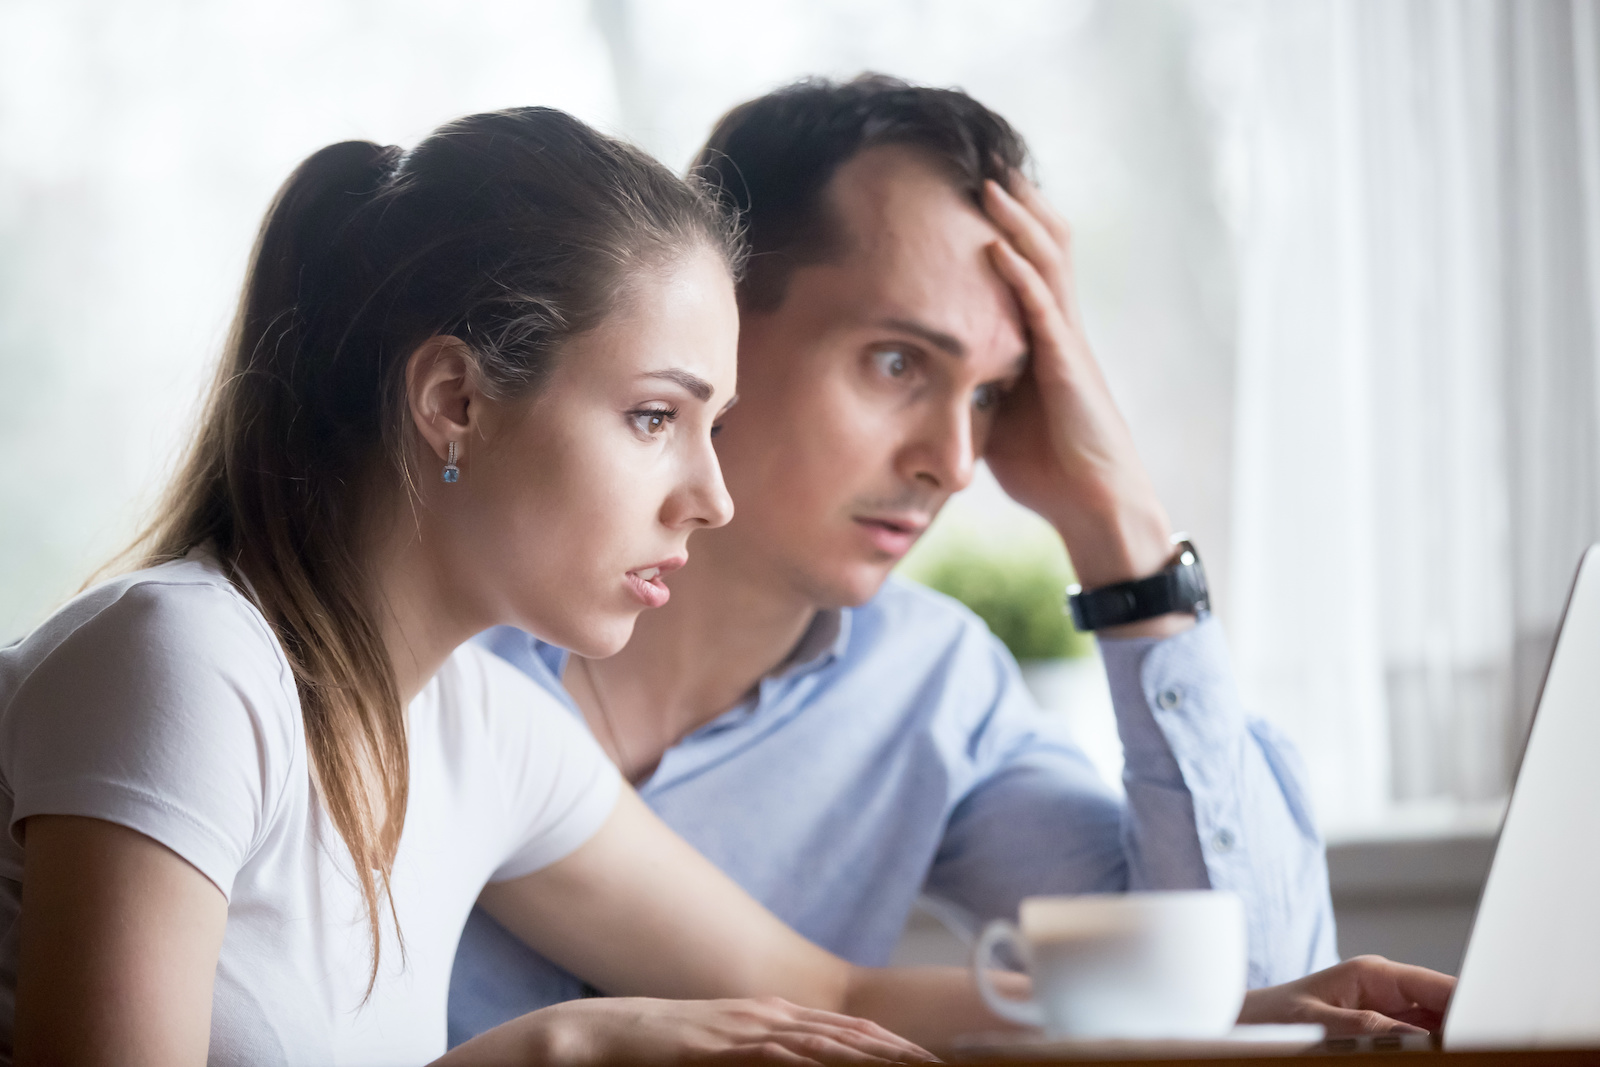 Installment loans for bad credit: A couple looks stressed as they check their credit score online